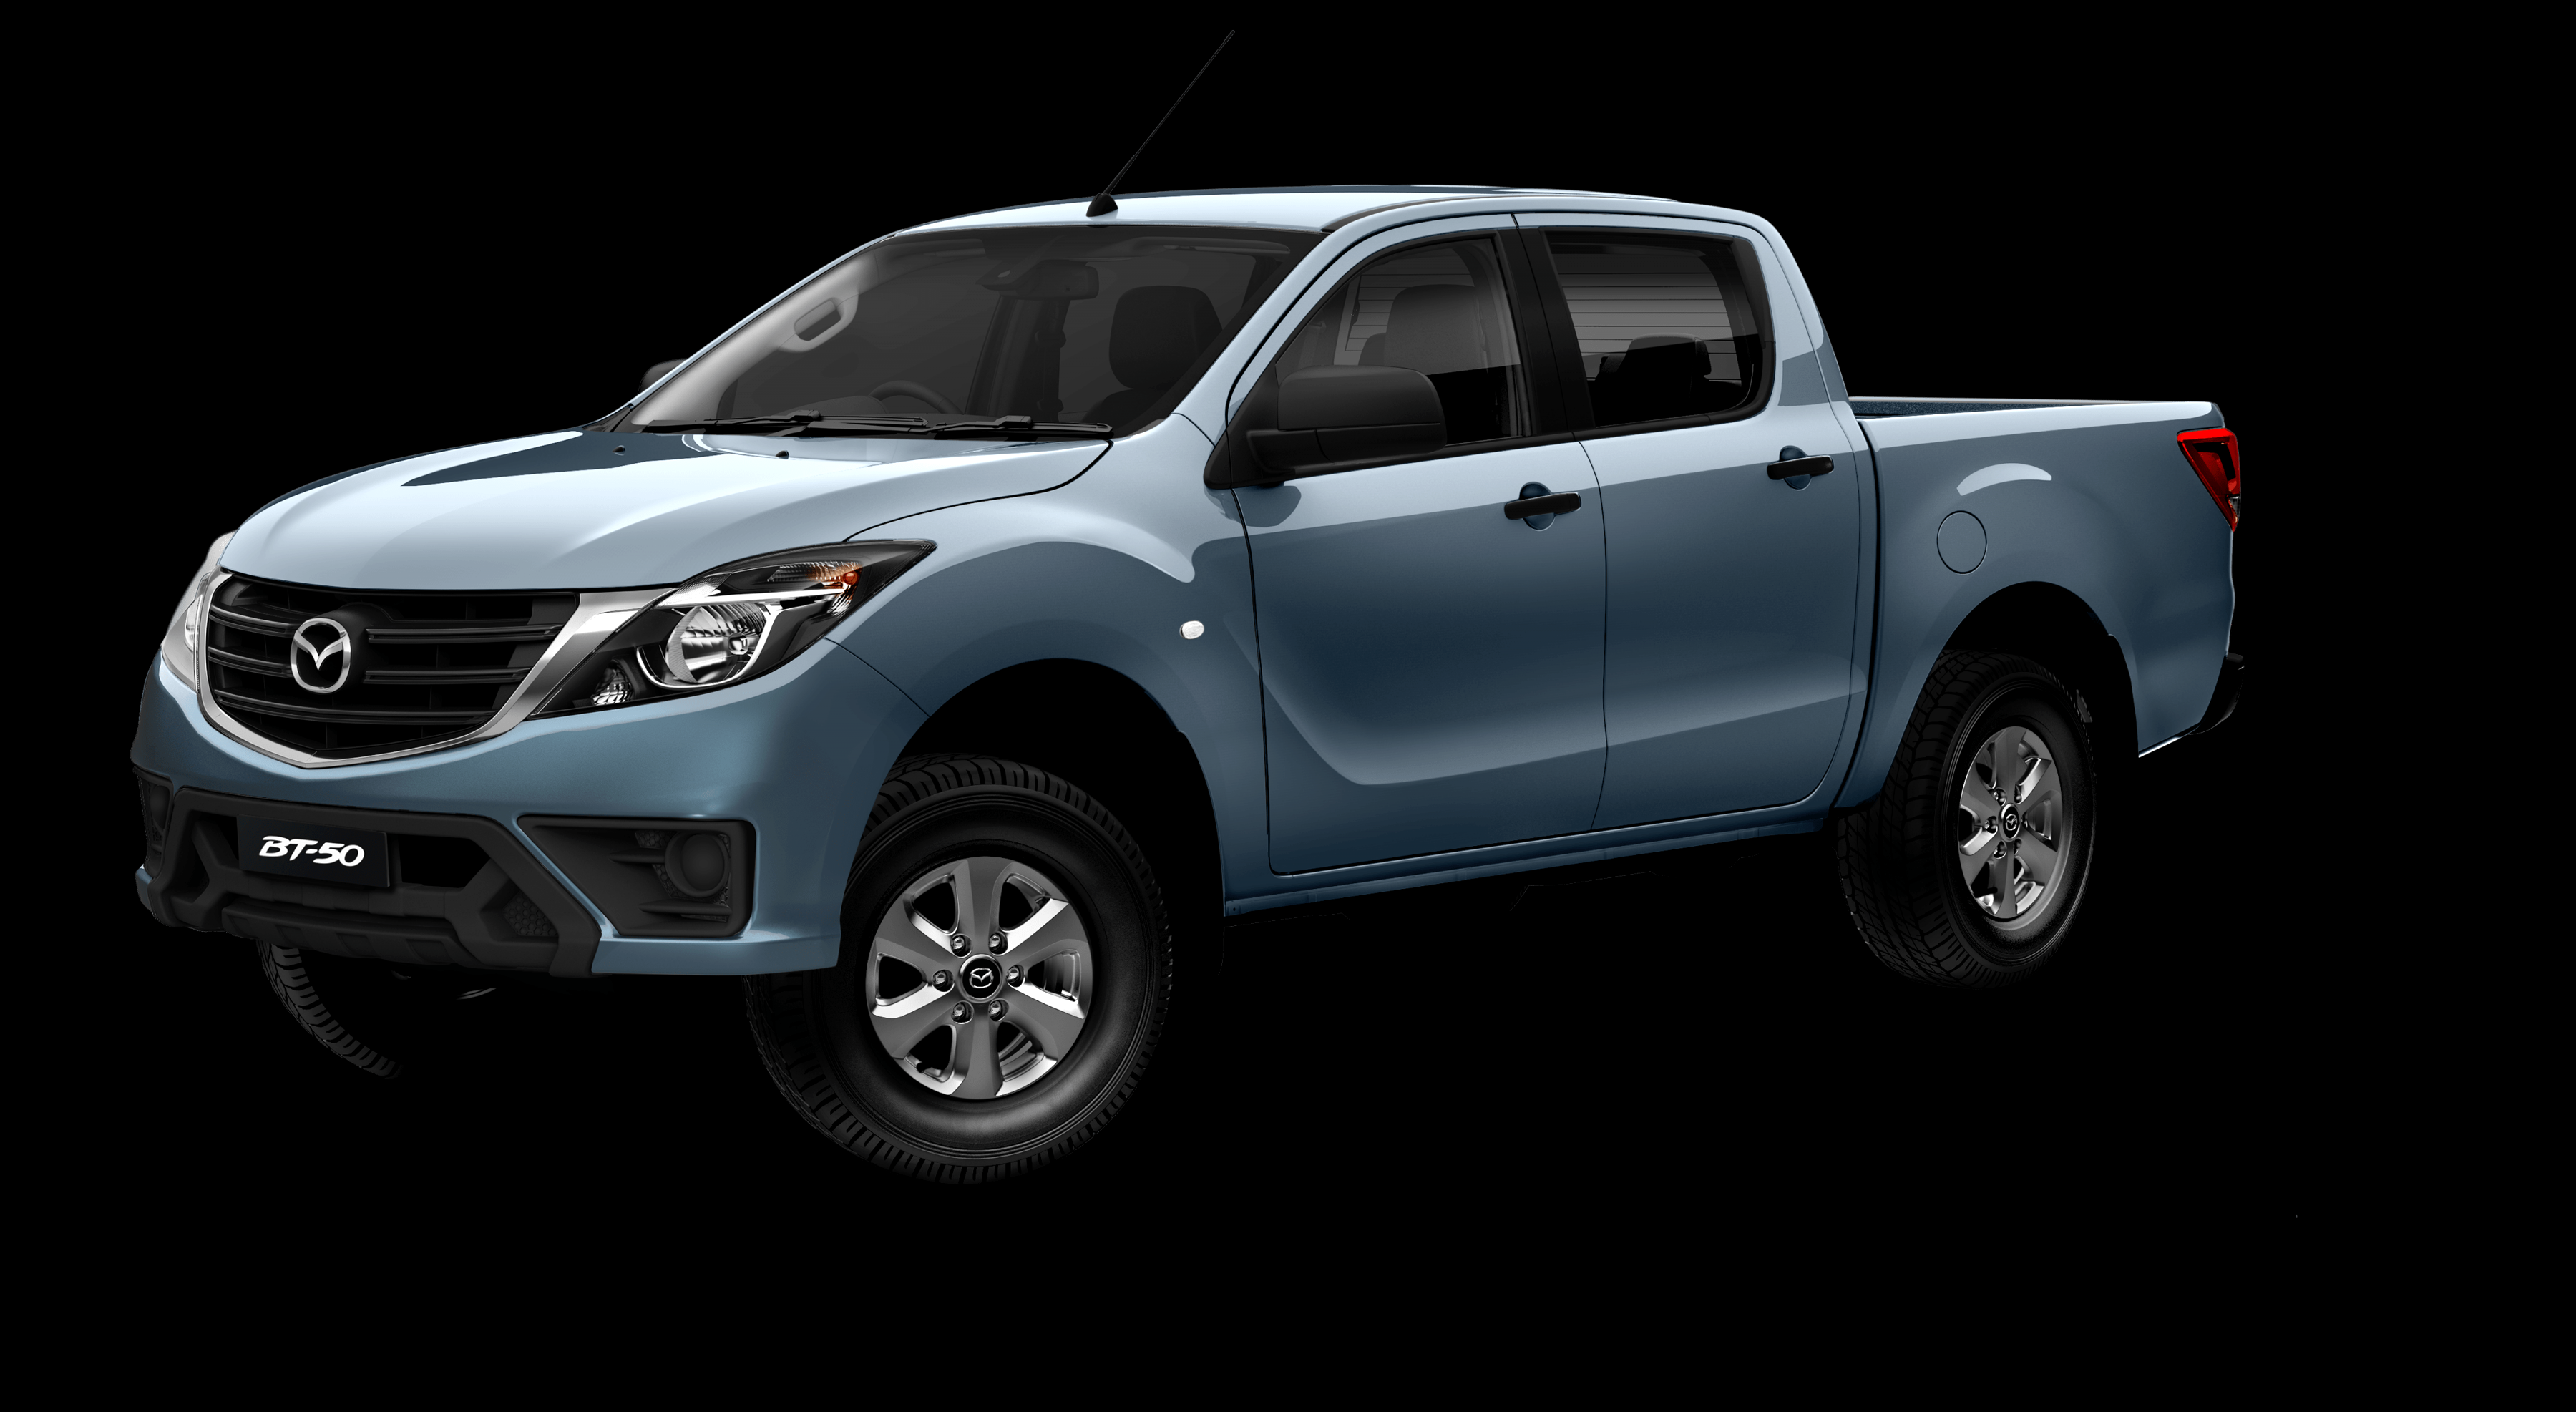 woolworths mazda raffle 2021 Specs and Review